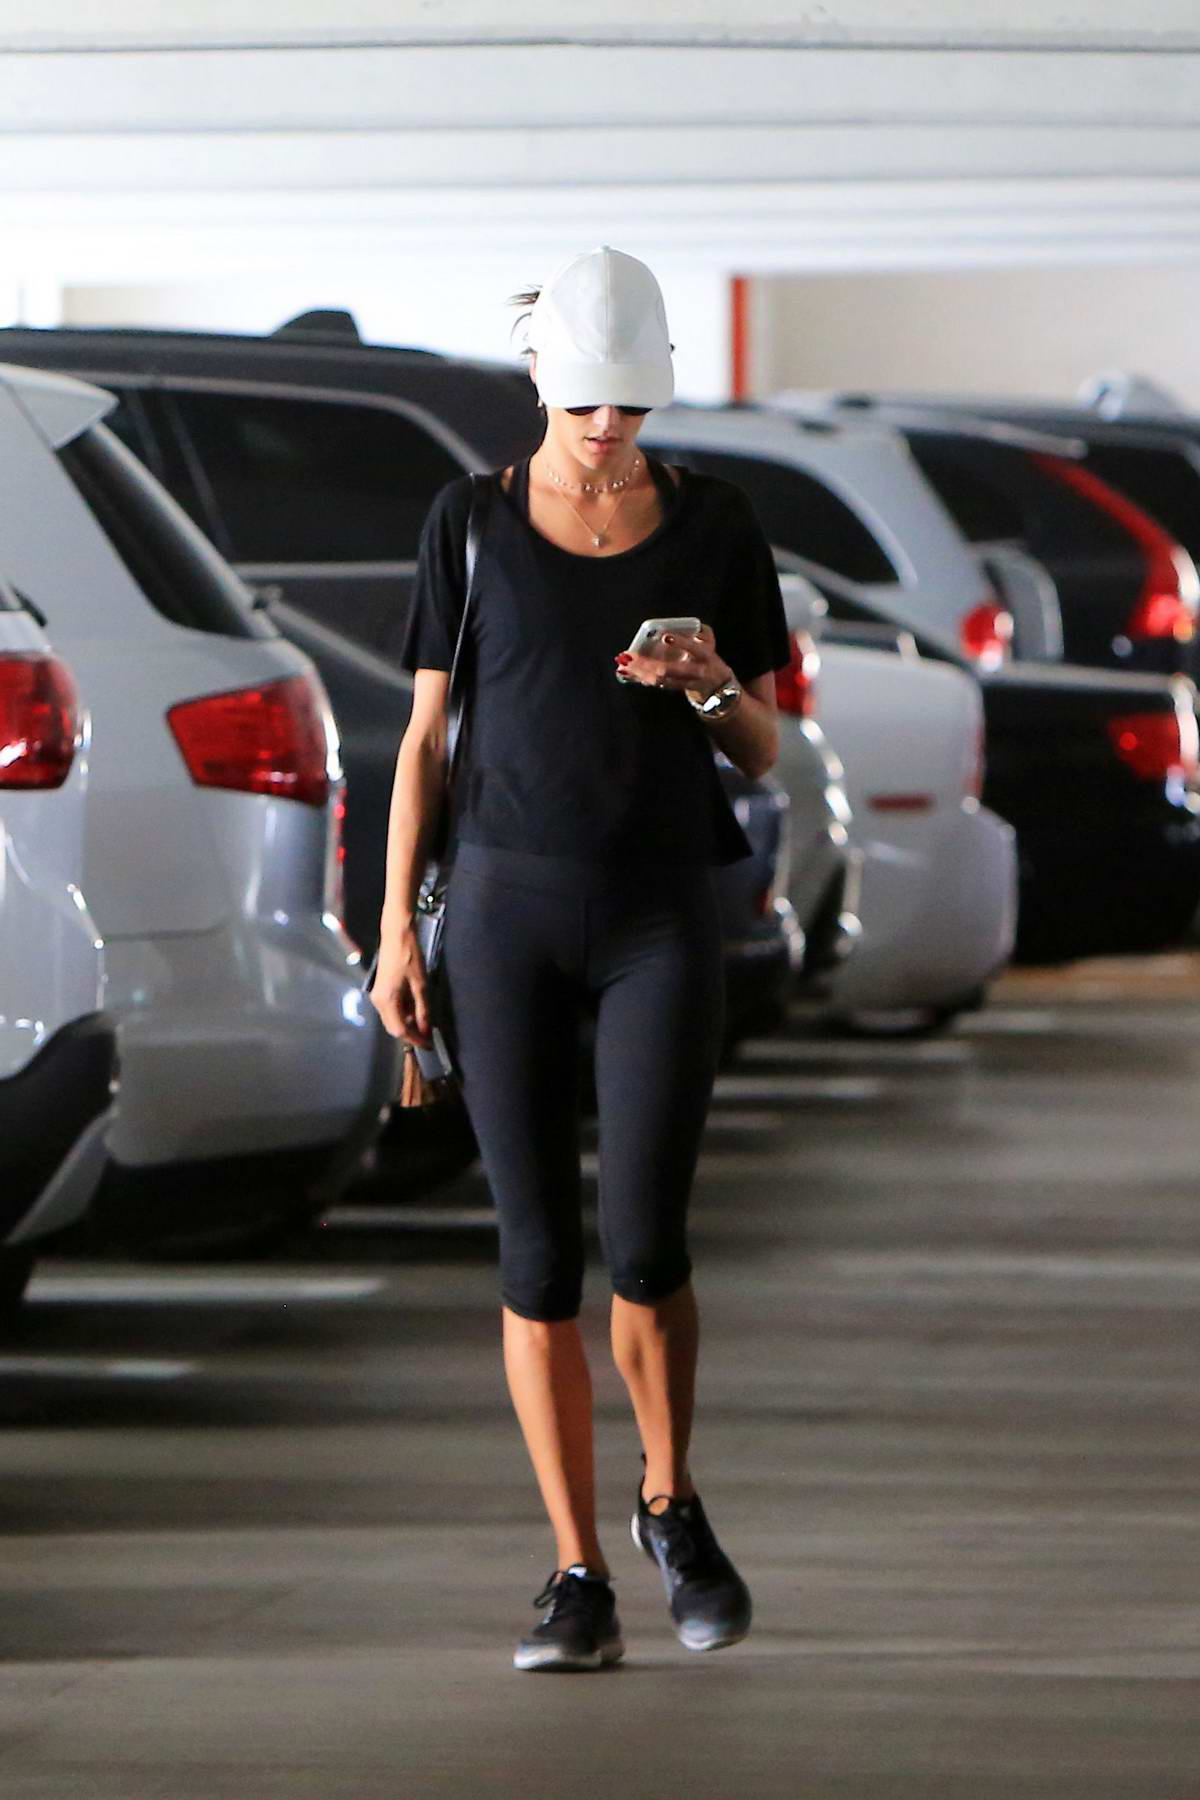 Alessandra Ambrosio spotted at a parking lot in Brentwood, Los Angeles